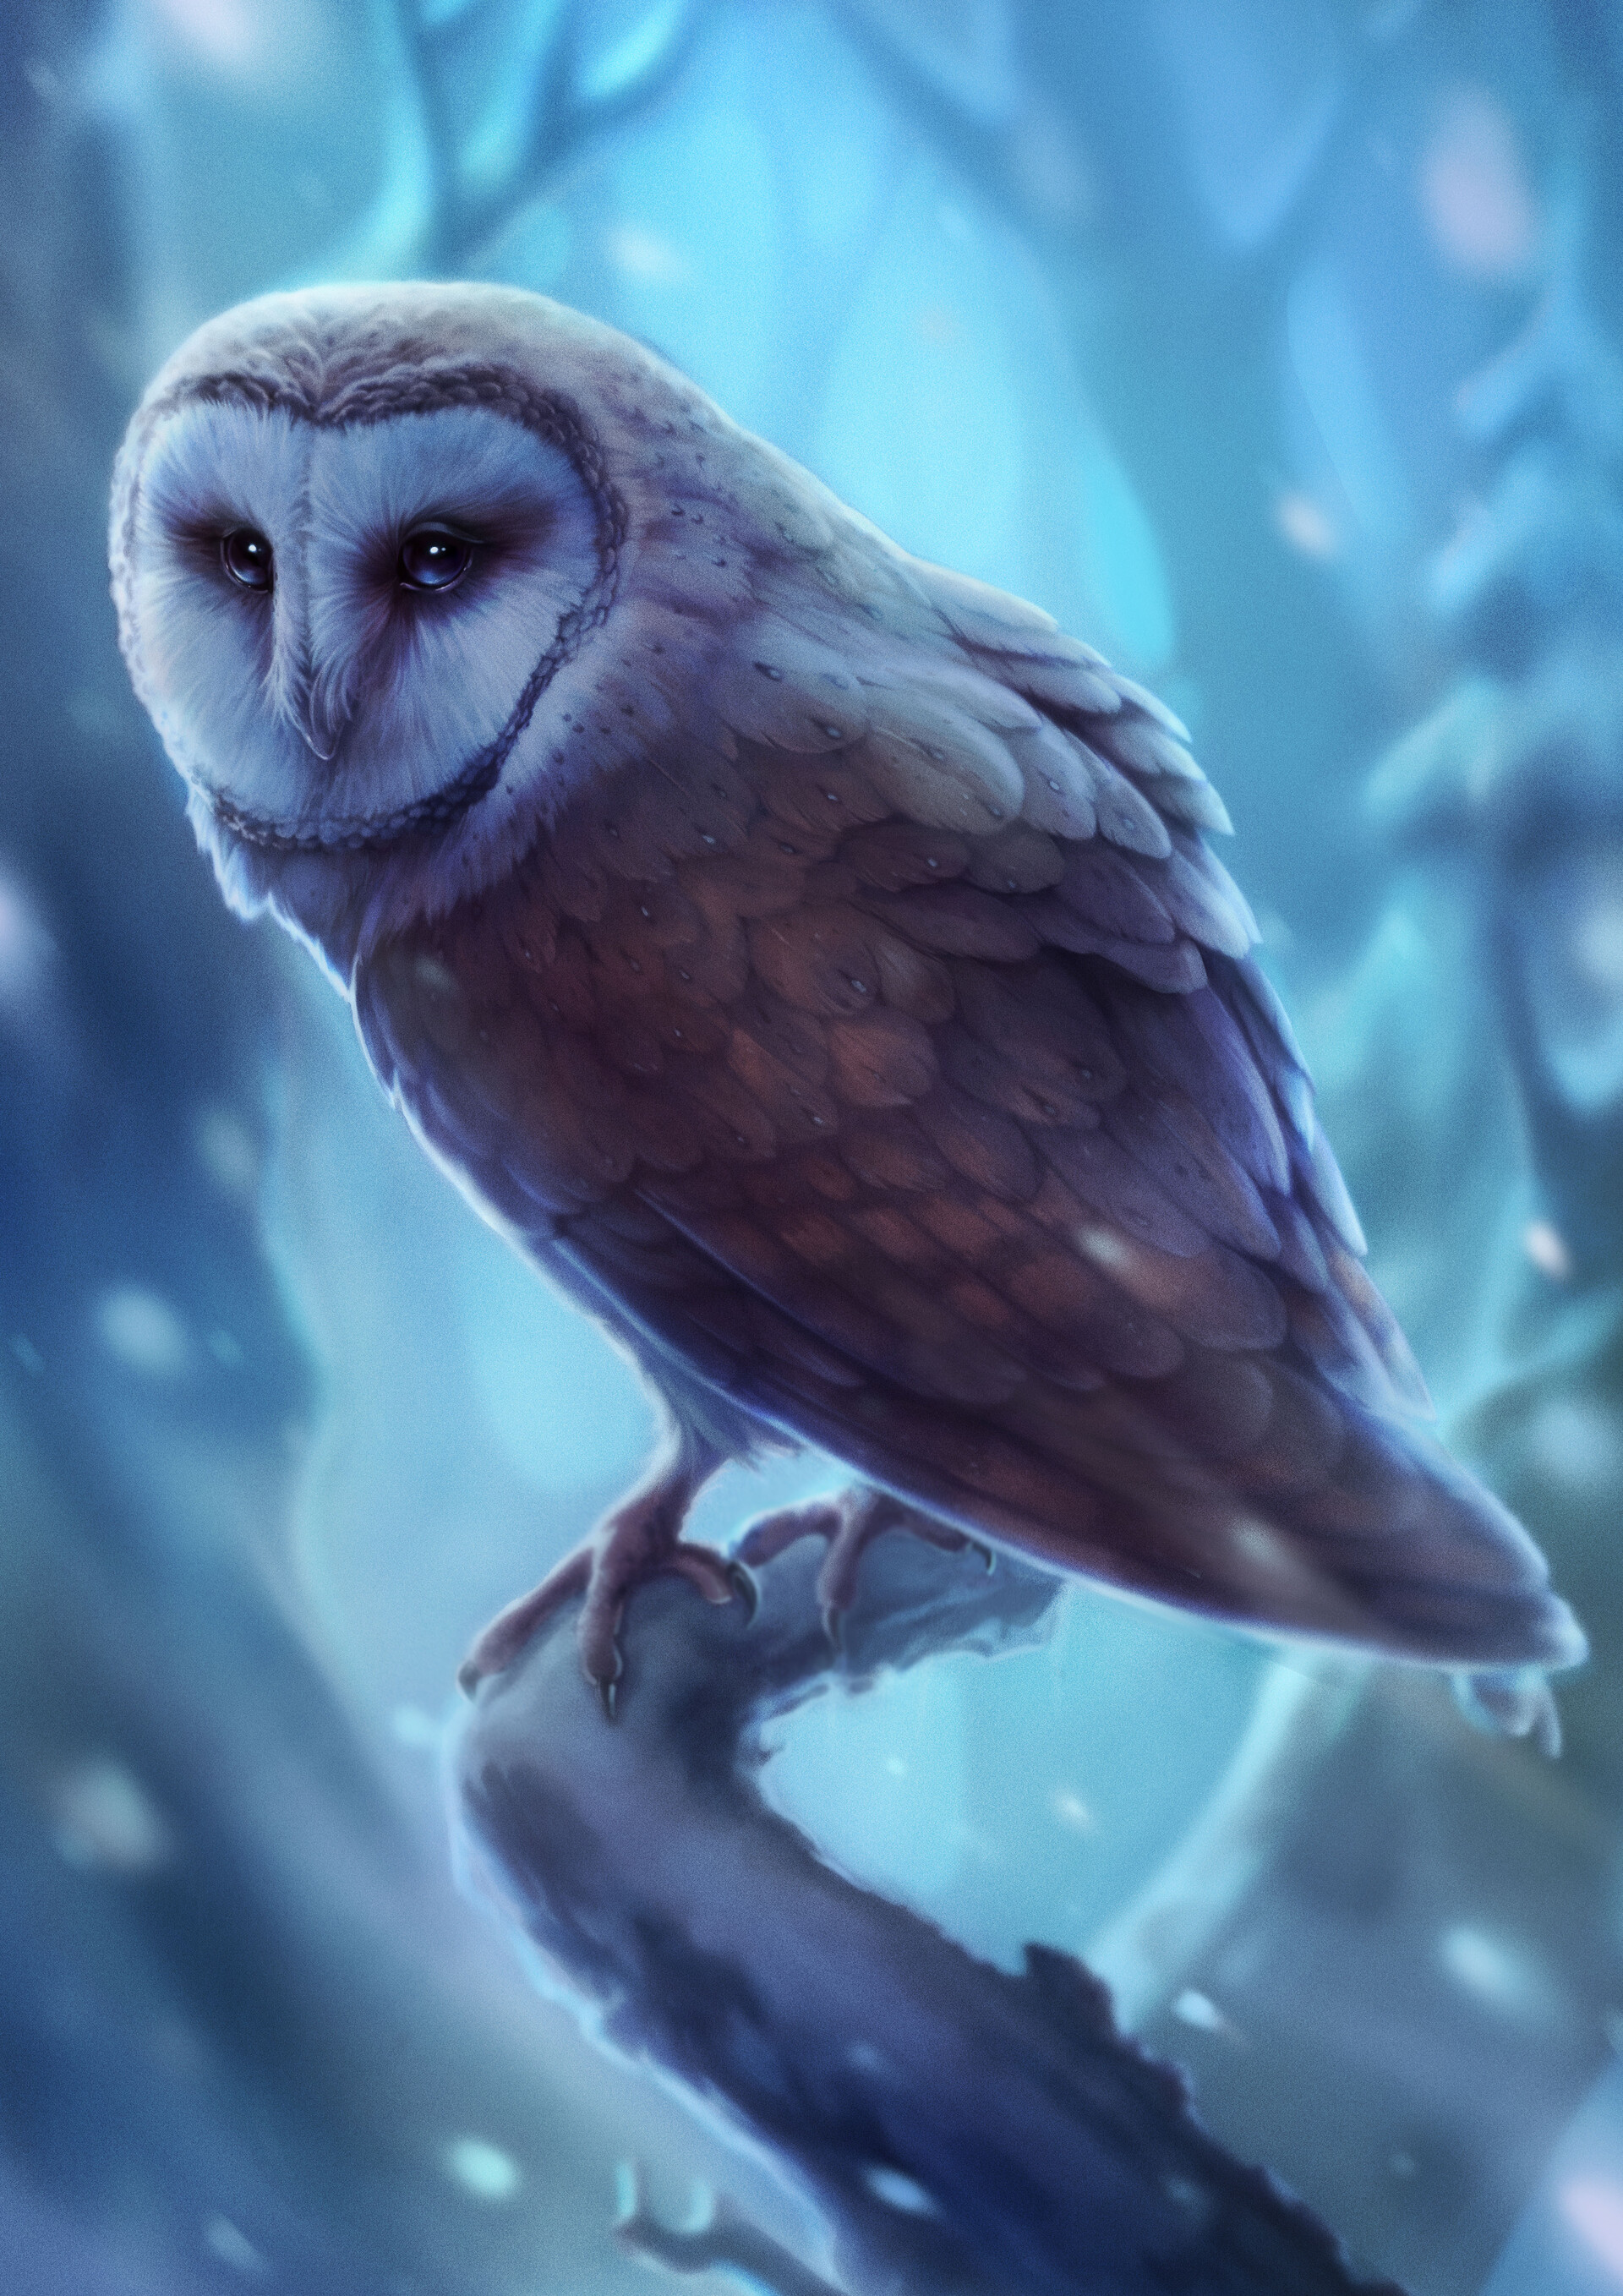 113497 Screensavers and Wallpapers Owl for phone. Download Owl, Bird, Art, Sight, Opinion, Predator pictures for free